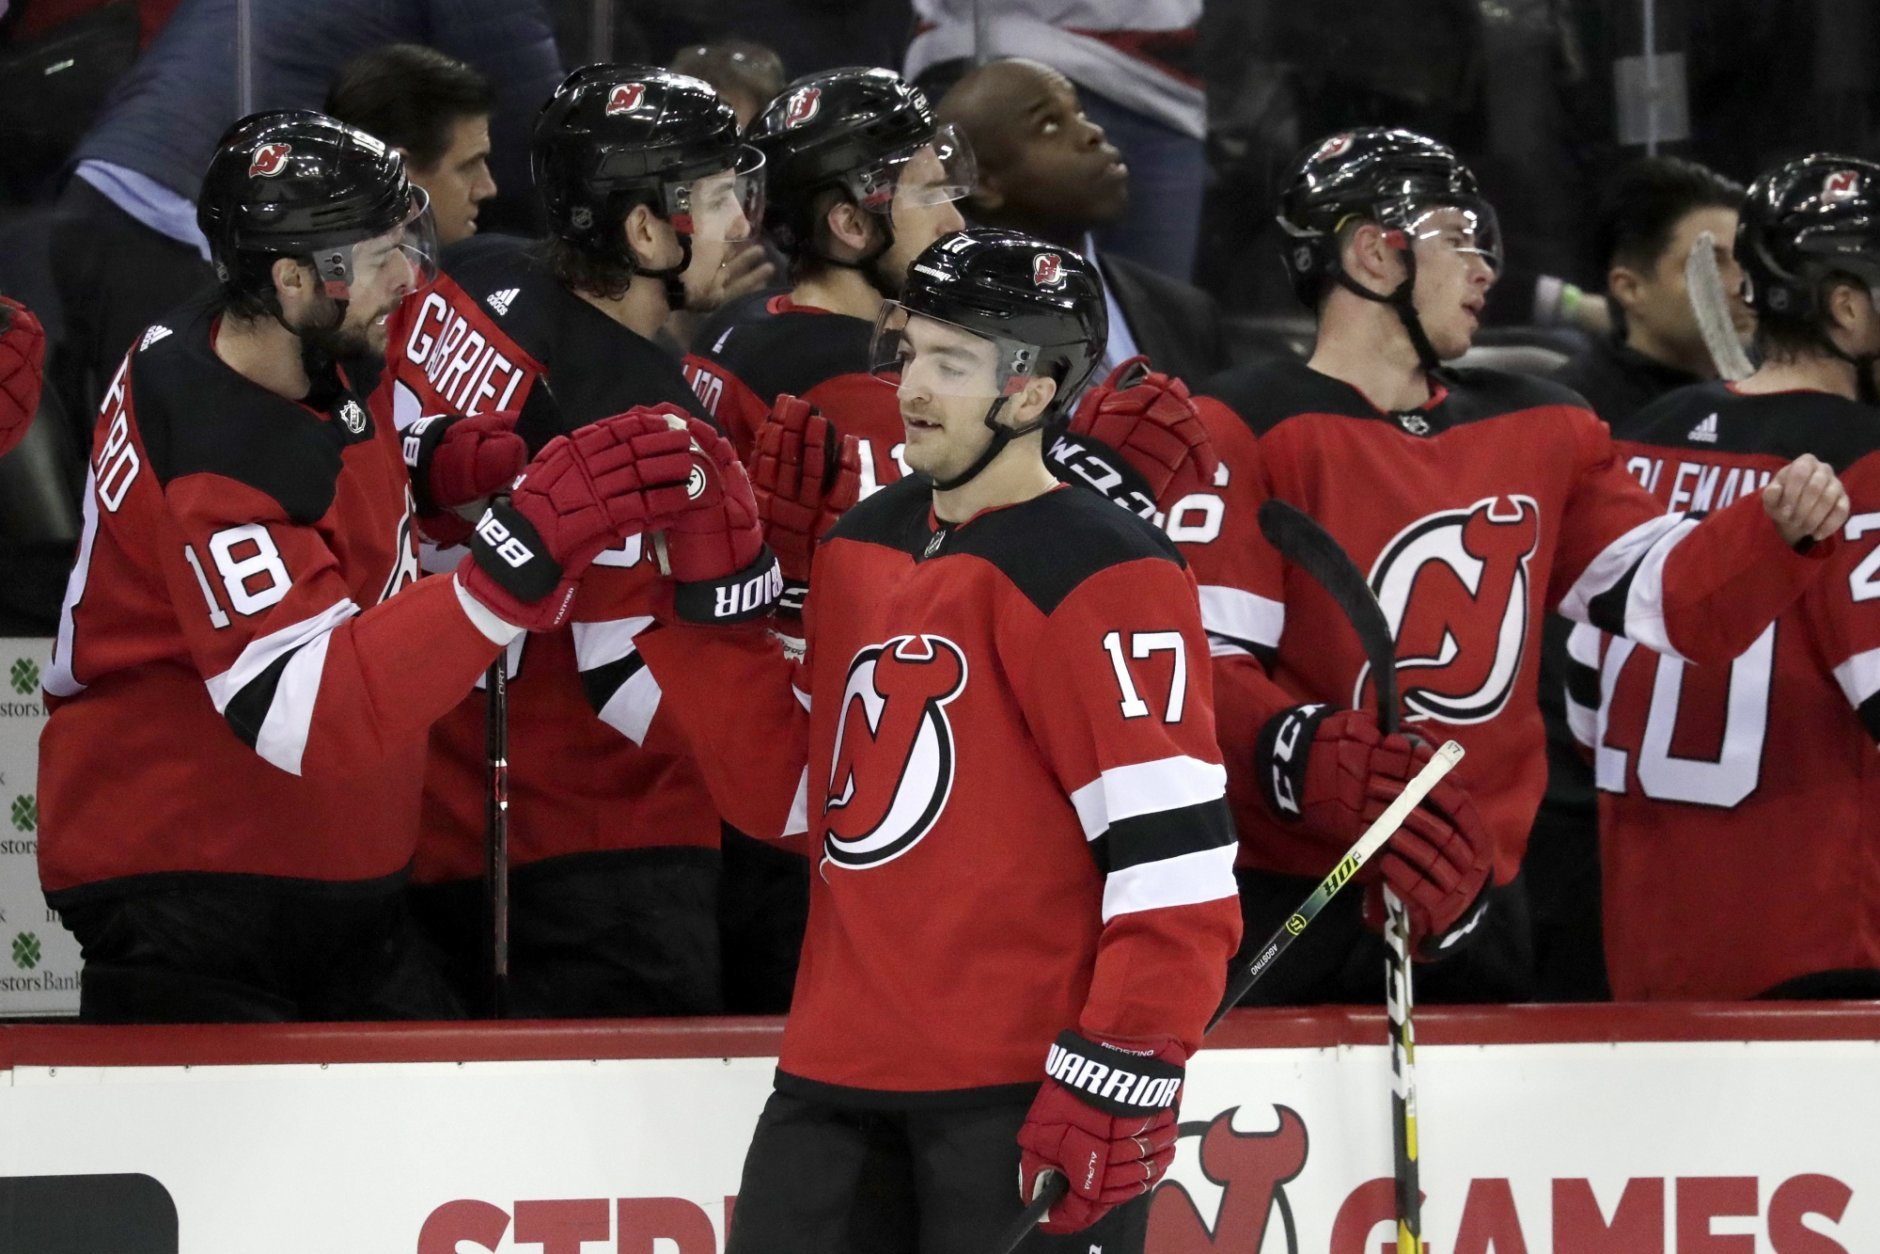 New Jersey Devils left wing Kenny Agostino (17) skates by his bench after scoring a goal on the Washington Capital during the first period of an NHL hockey game, Tuesday, March 19, 2019, in Newark, N.J. (AP Photo/Julio Cortez)